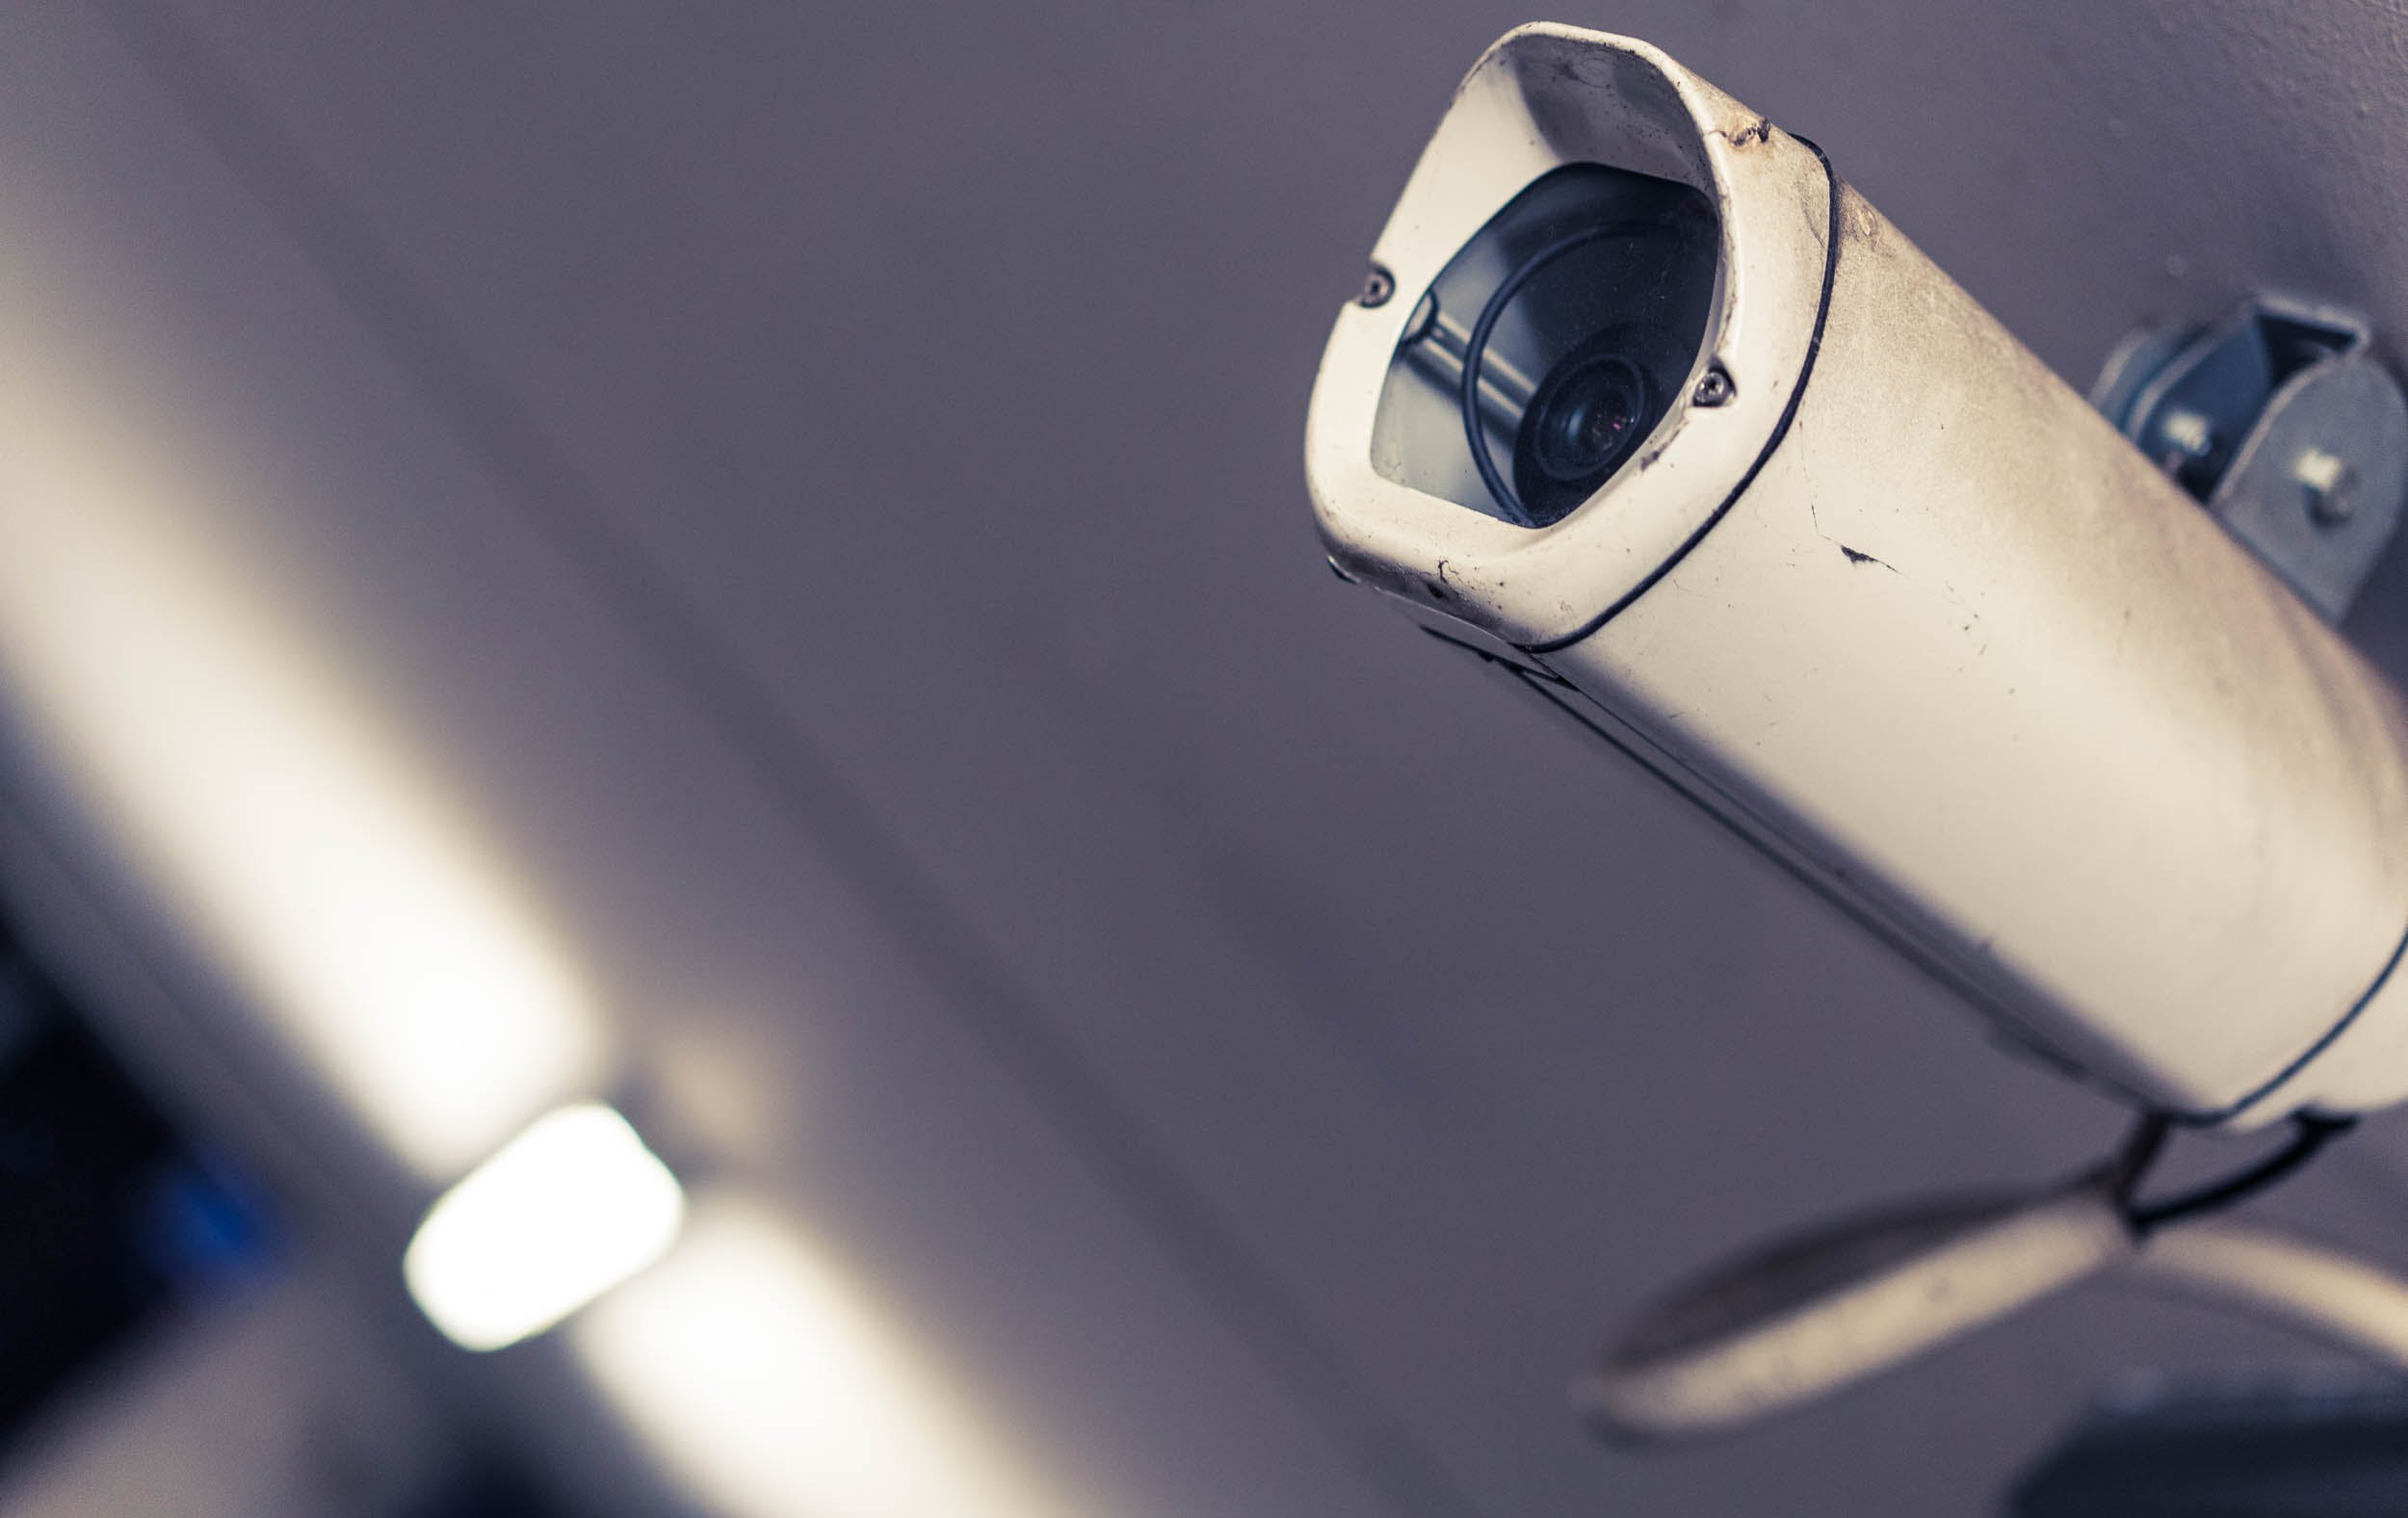 White and Gray Surveillance Camera in Macro Photography